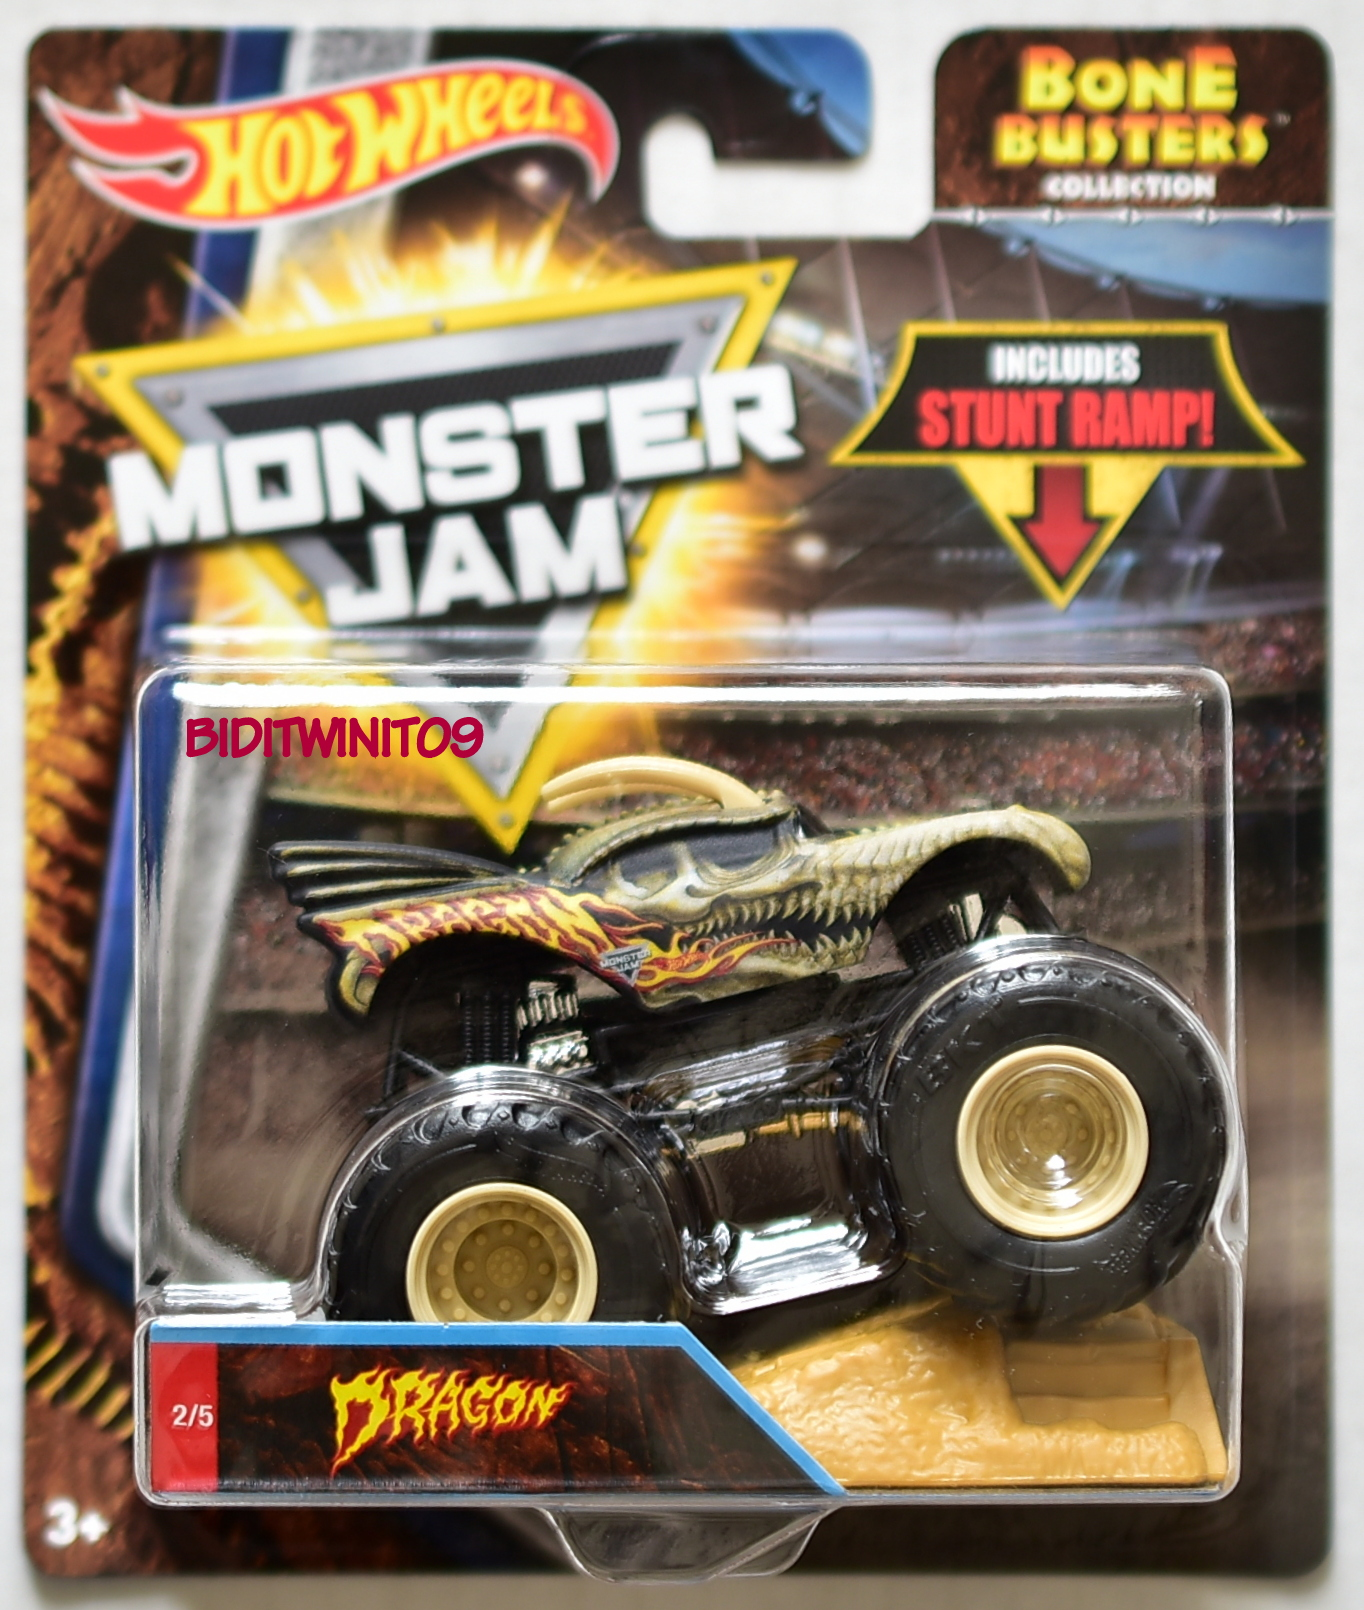 HOT WHEELS 2018 MONSTER JAM BONE BUSTERS DRAGON